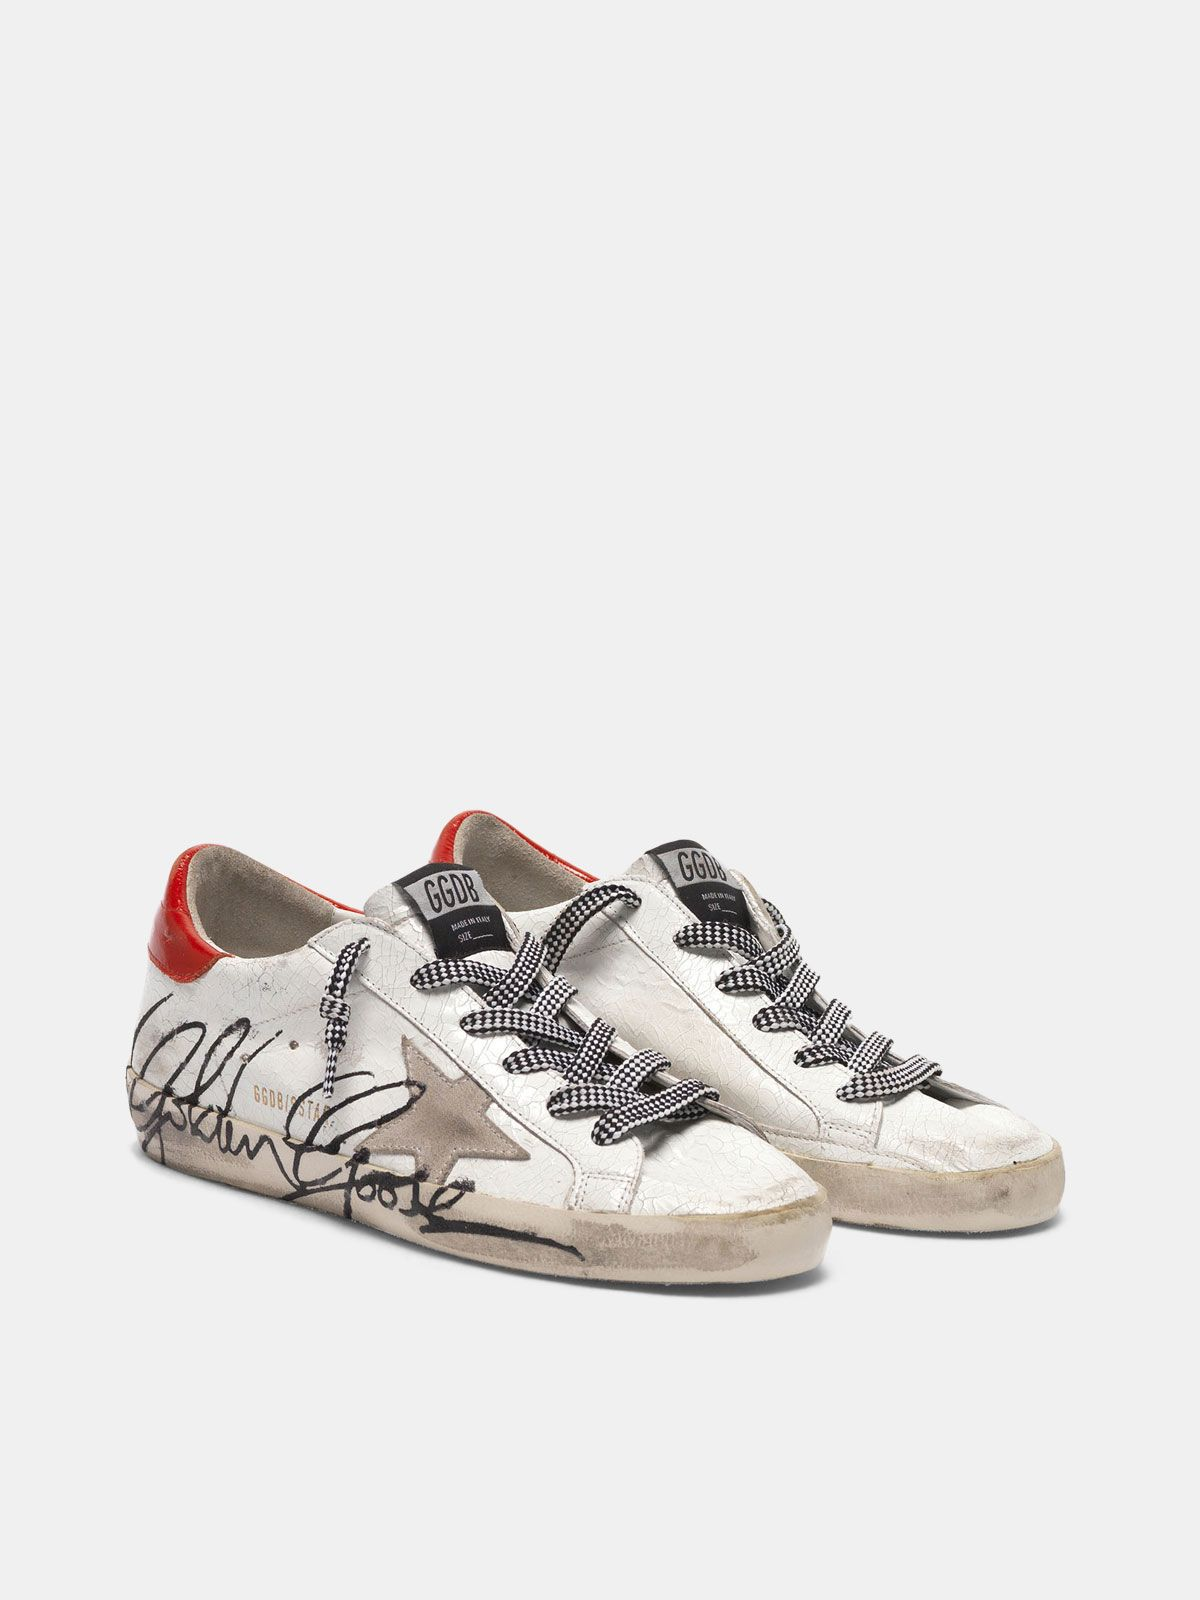 Golden Goose - Super-Star sneakers in crackle effect patent leather in